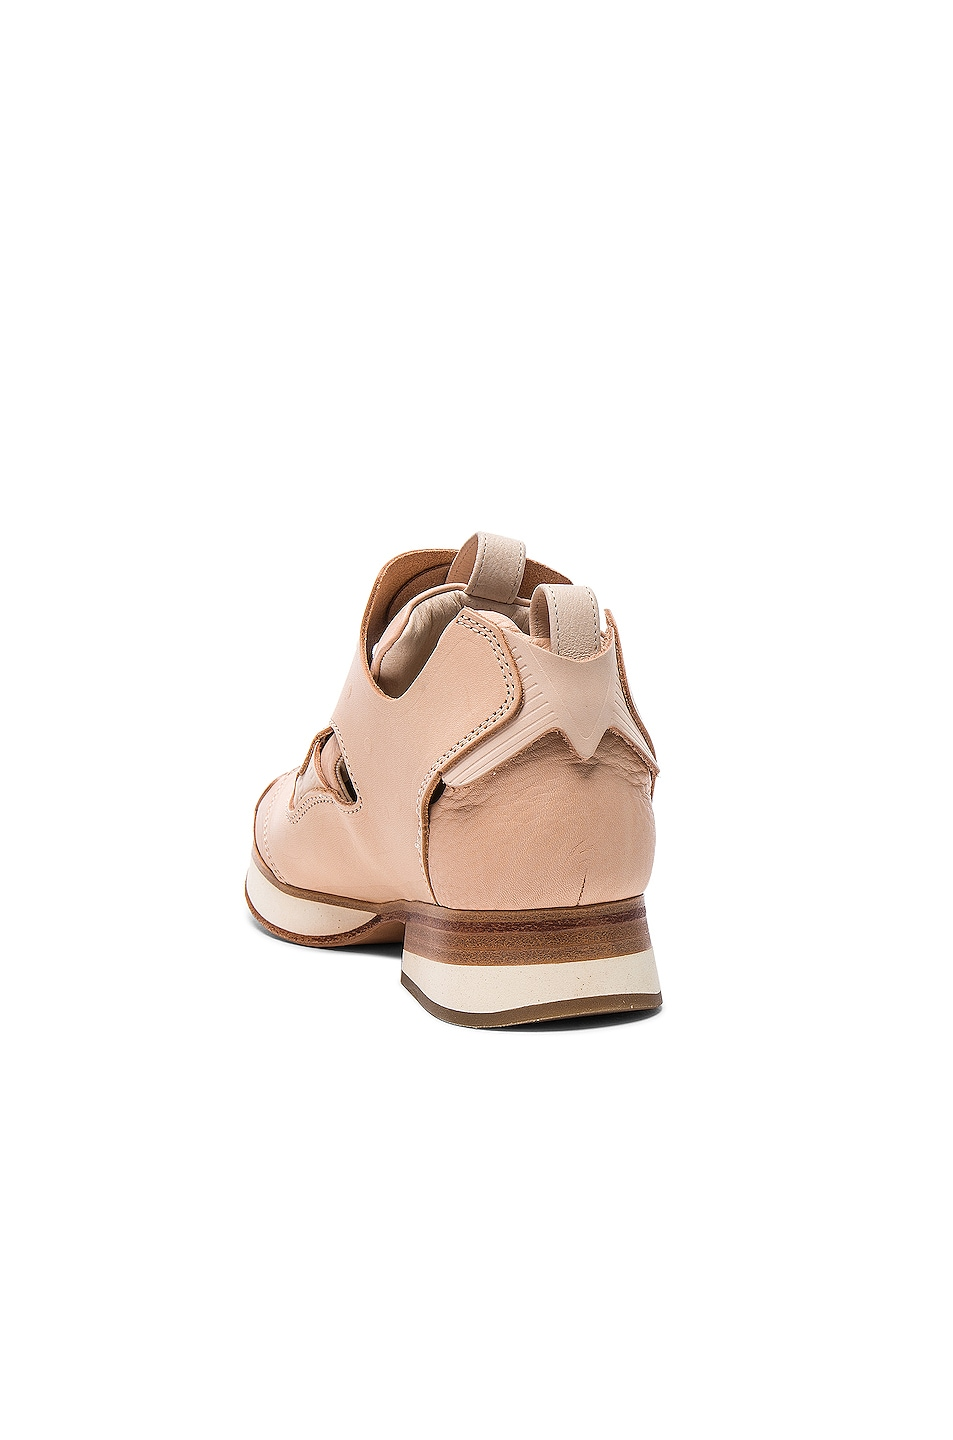 Image 3 of Hender Scheme Manual Industrial Product 15 in Natural